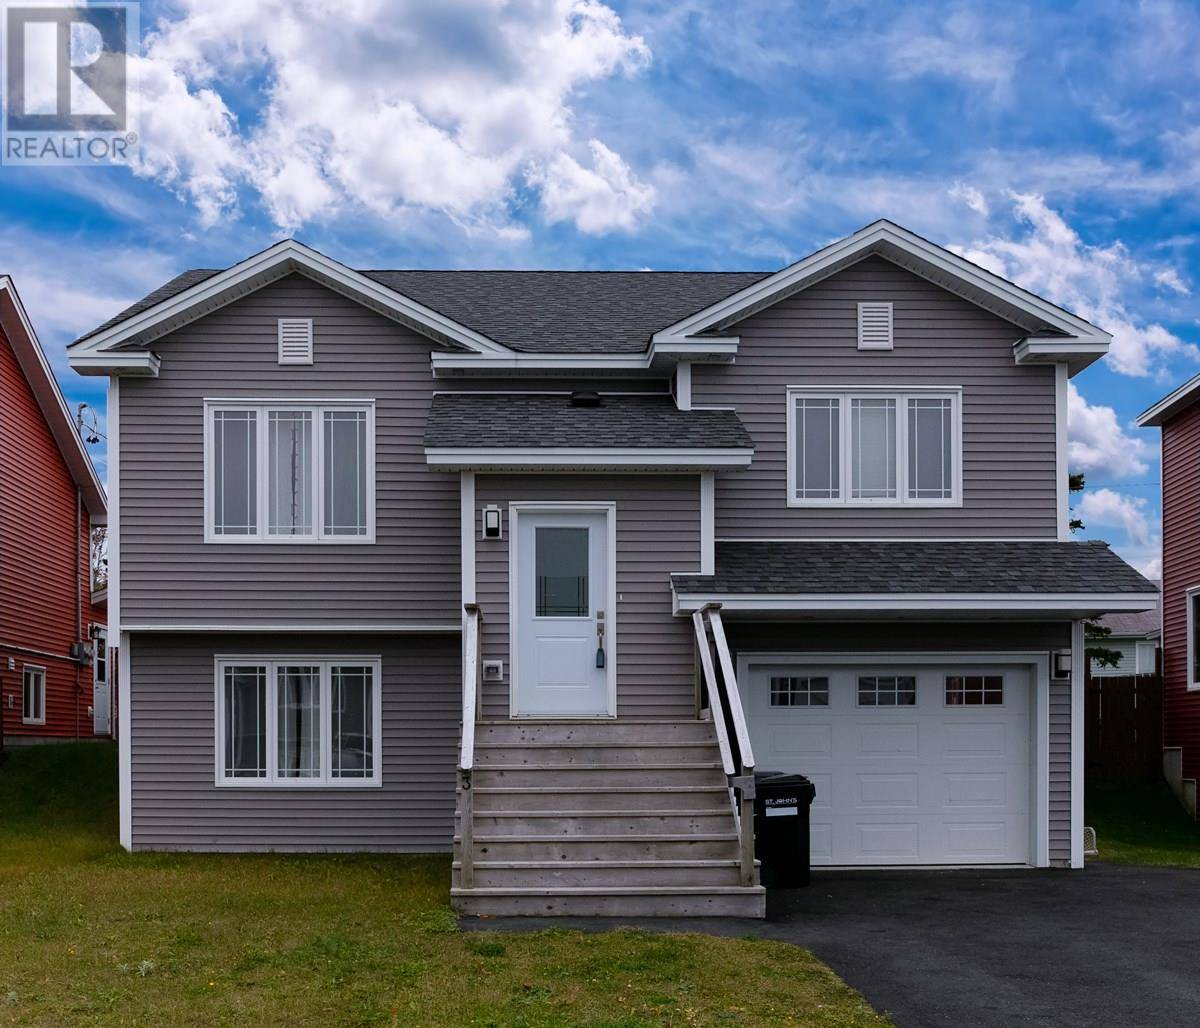 House for sale at 3 Biscay Pl St John's Newfoundland - MLS: 1206757